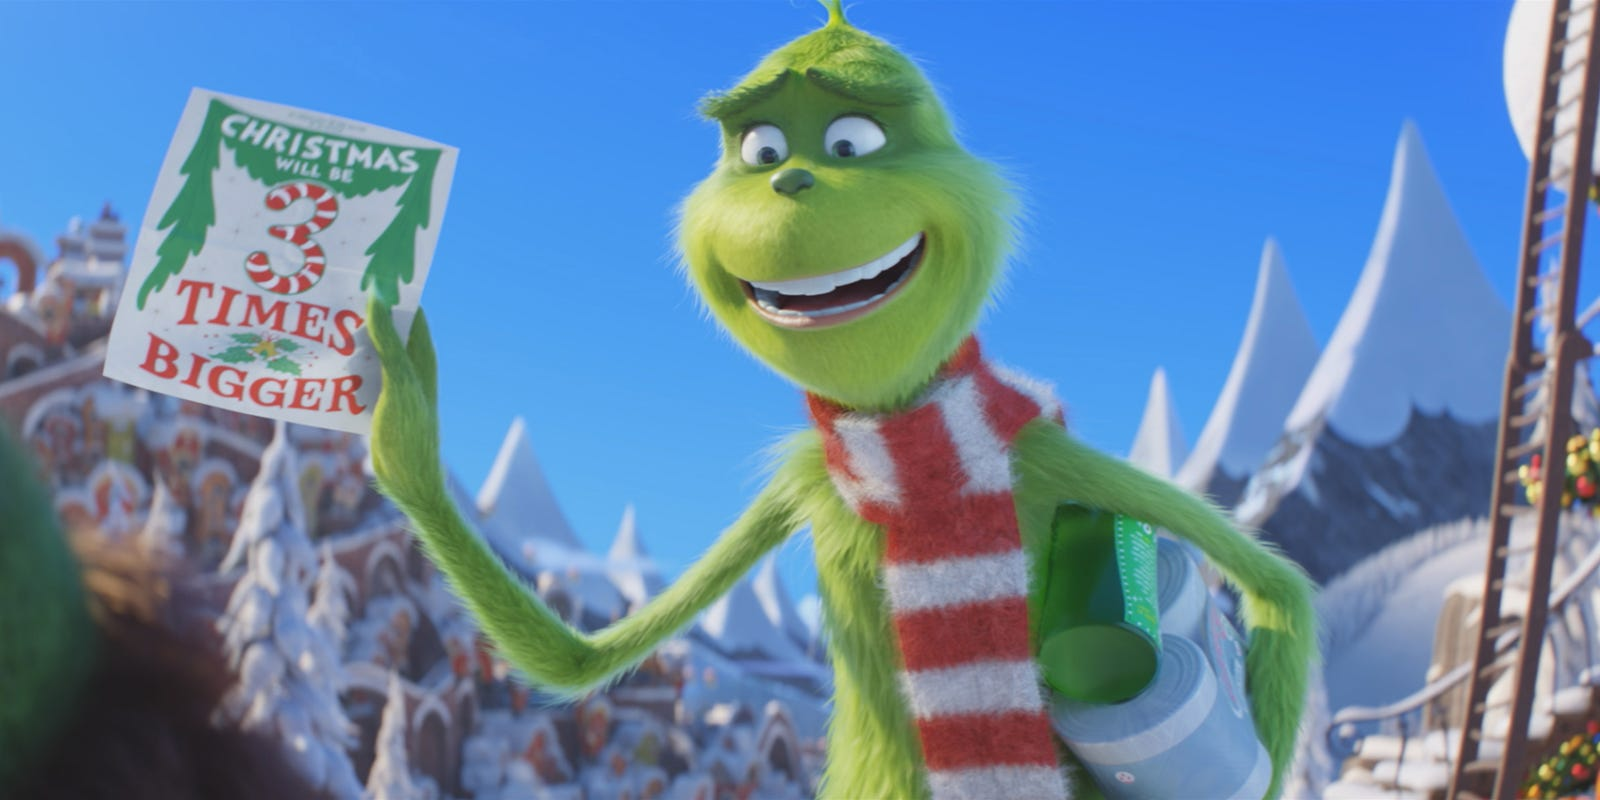 The Grinch Goes Soft Decoding His New Sensitive Turn Spoilers